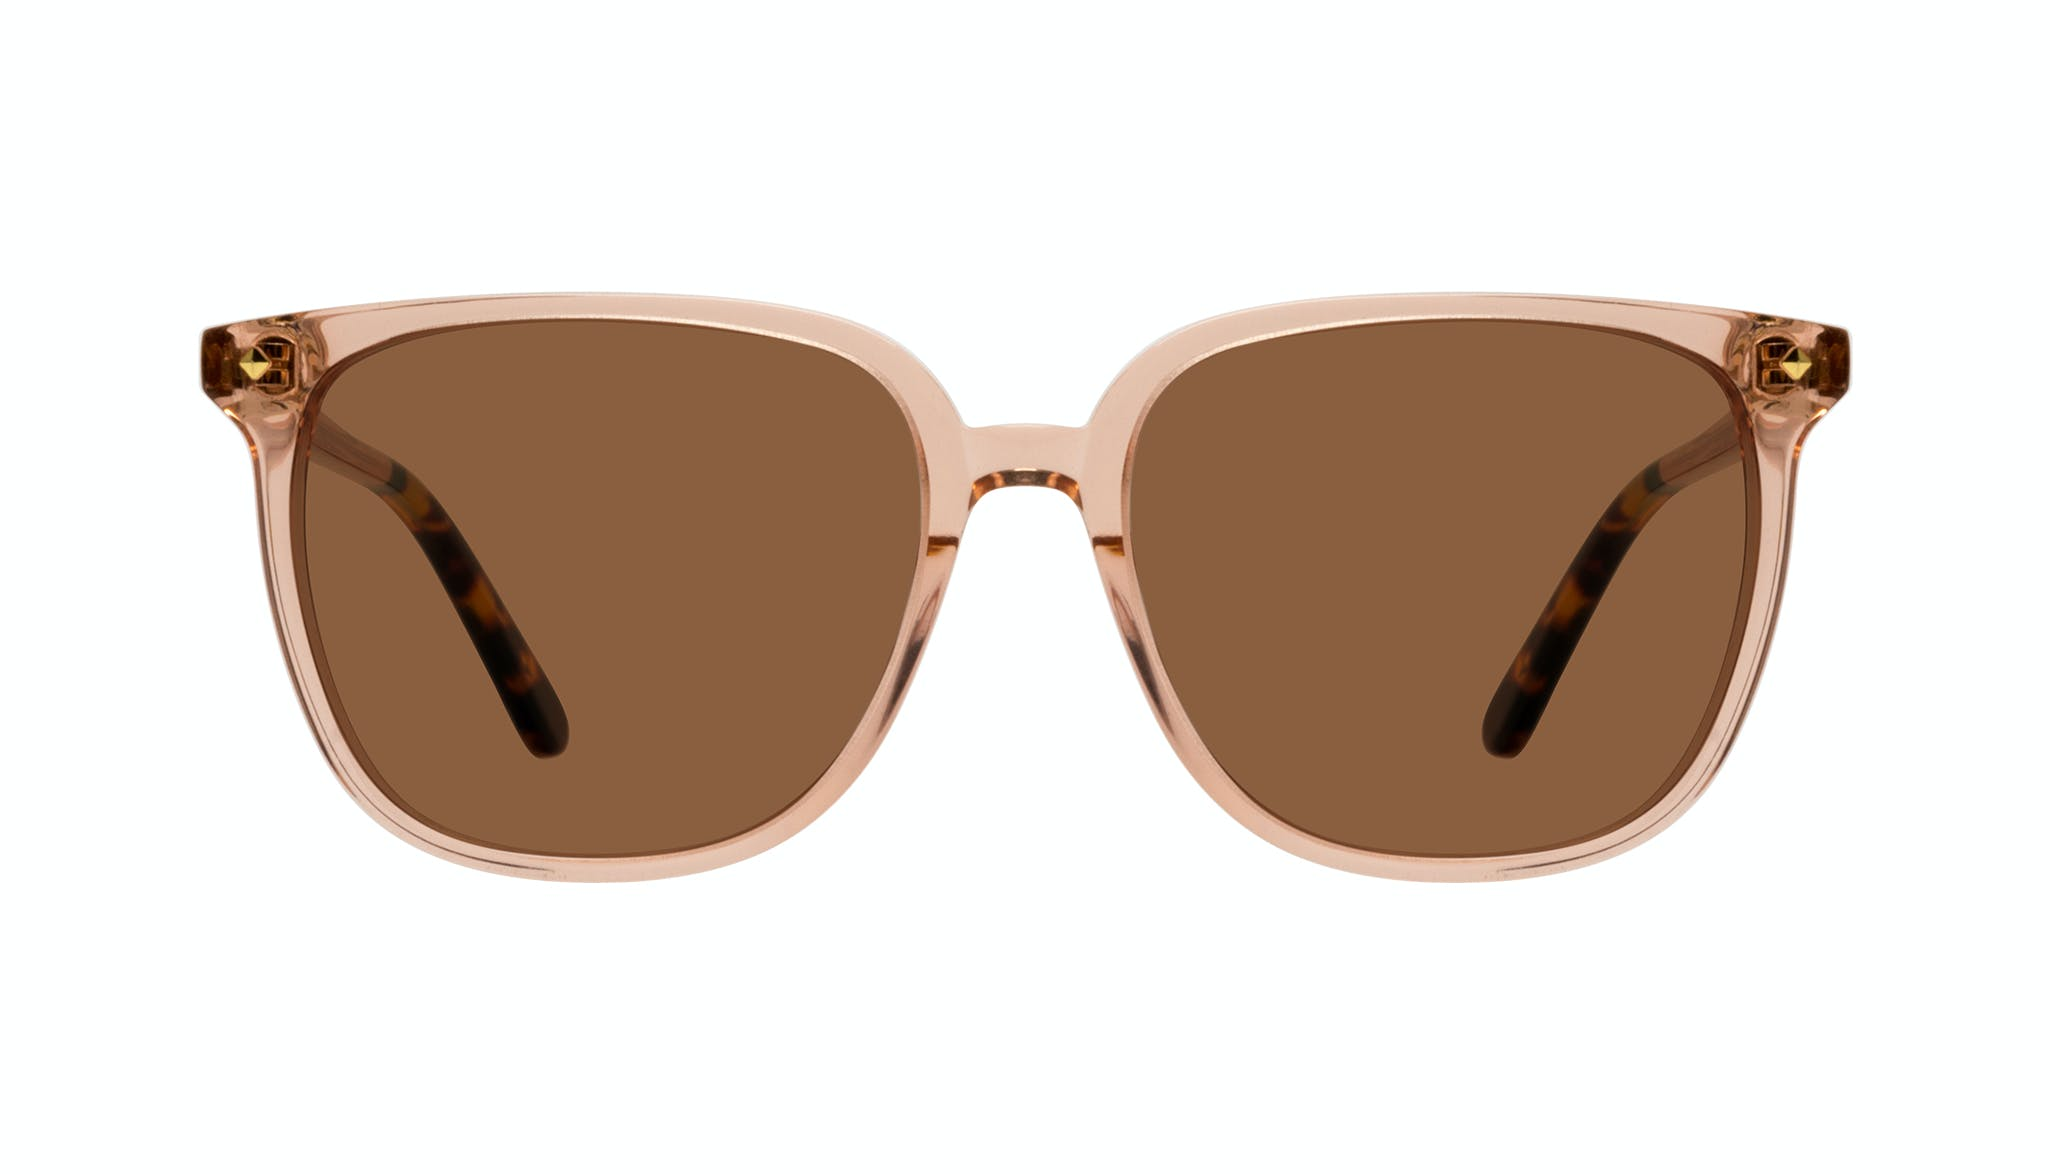 Affordable Fashion Glasses Cat Eye Sunglasses Women Gia Peach Front